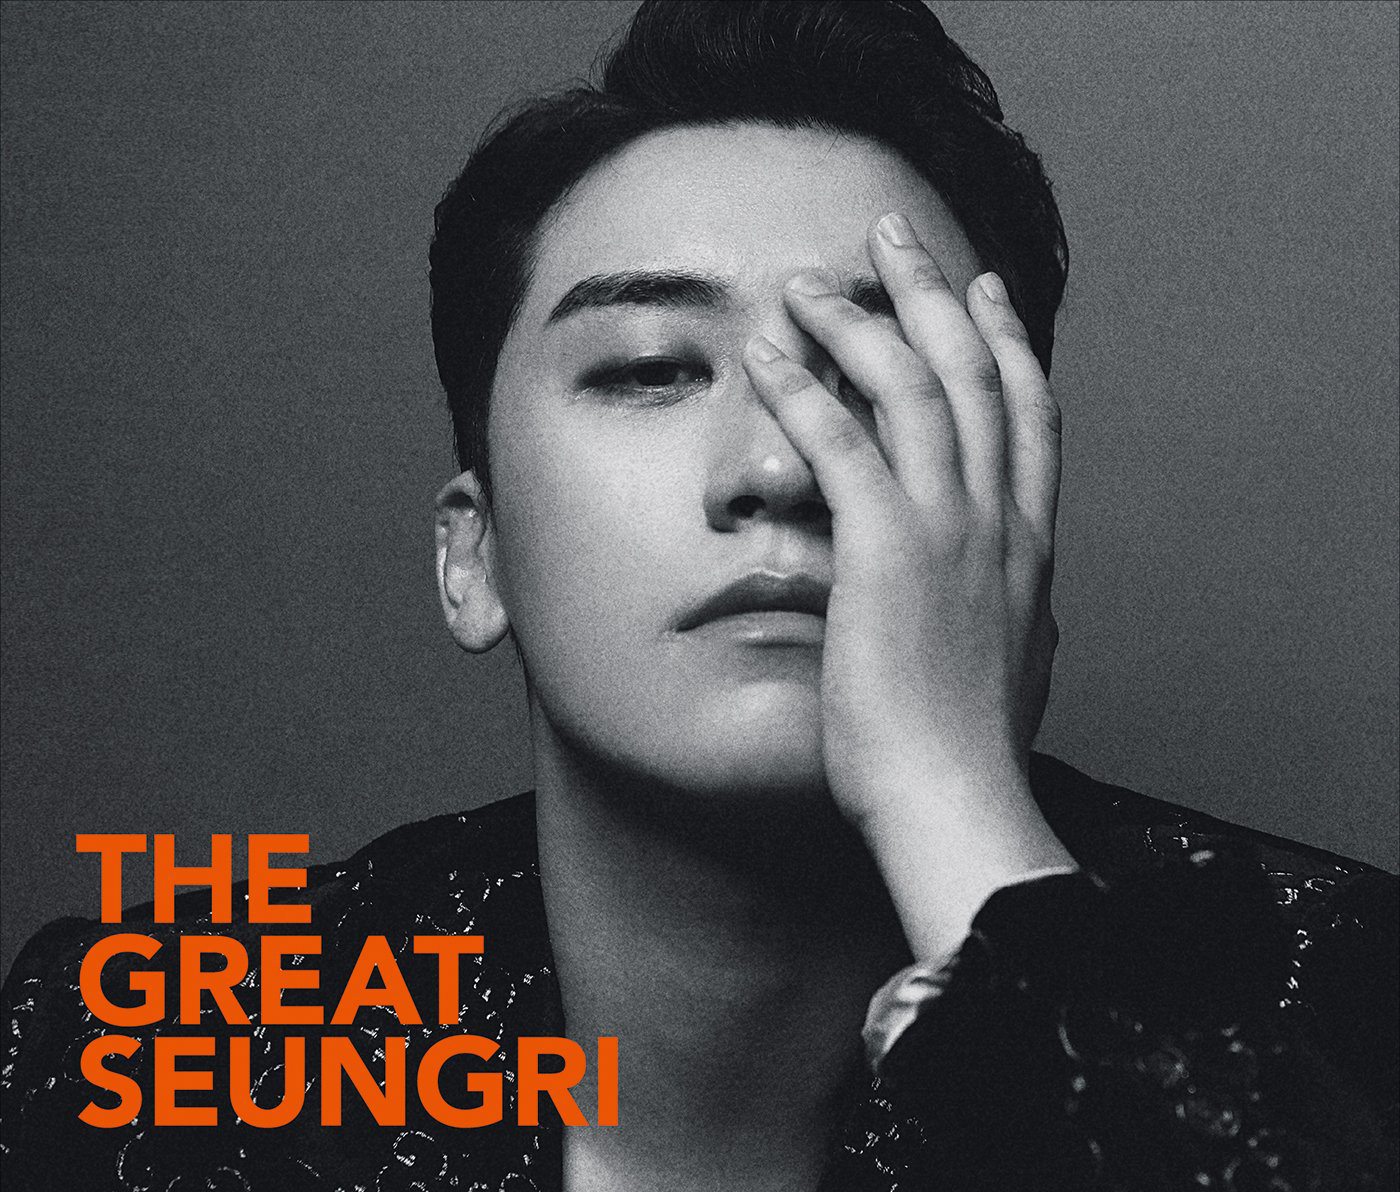 The Great Seungri (Japanese album)